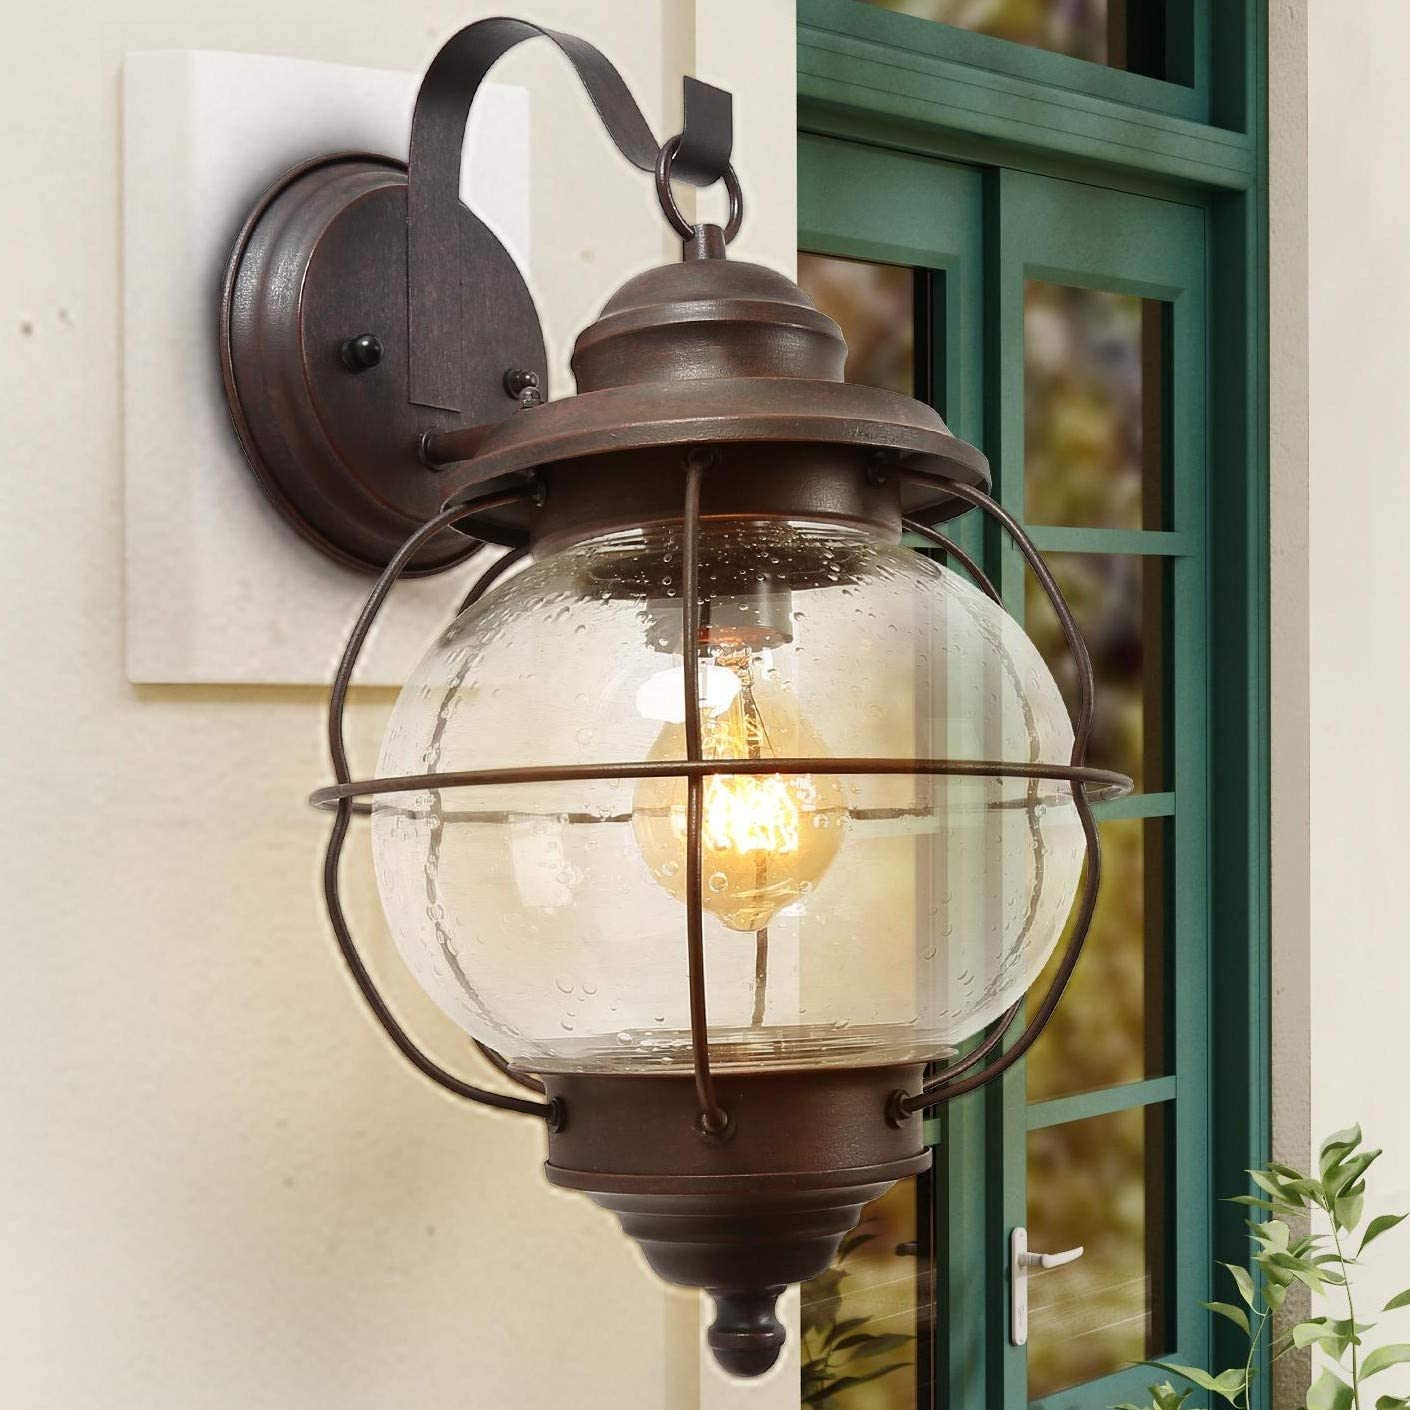 LNC Exterior Porch Light Fixtures,10″ Large Size Globe Seeded Glass Metal Cage Frame